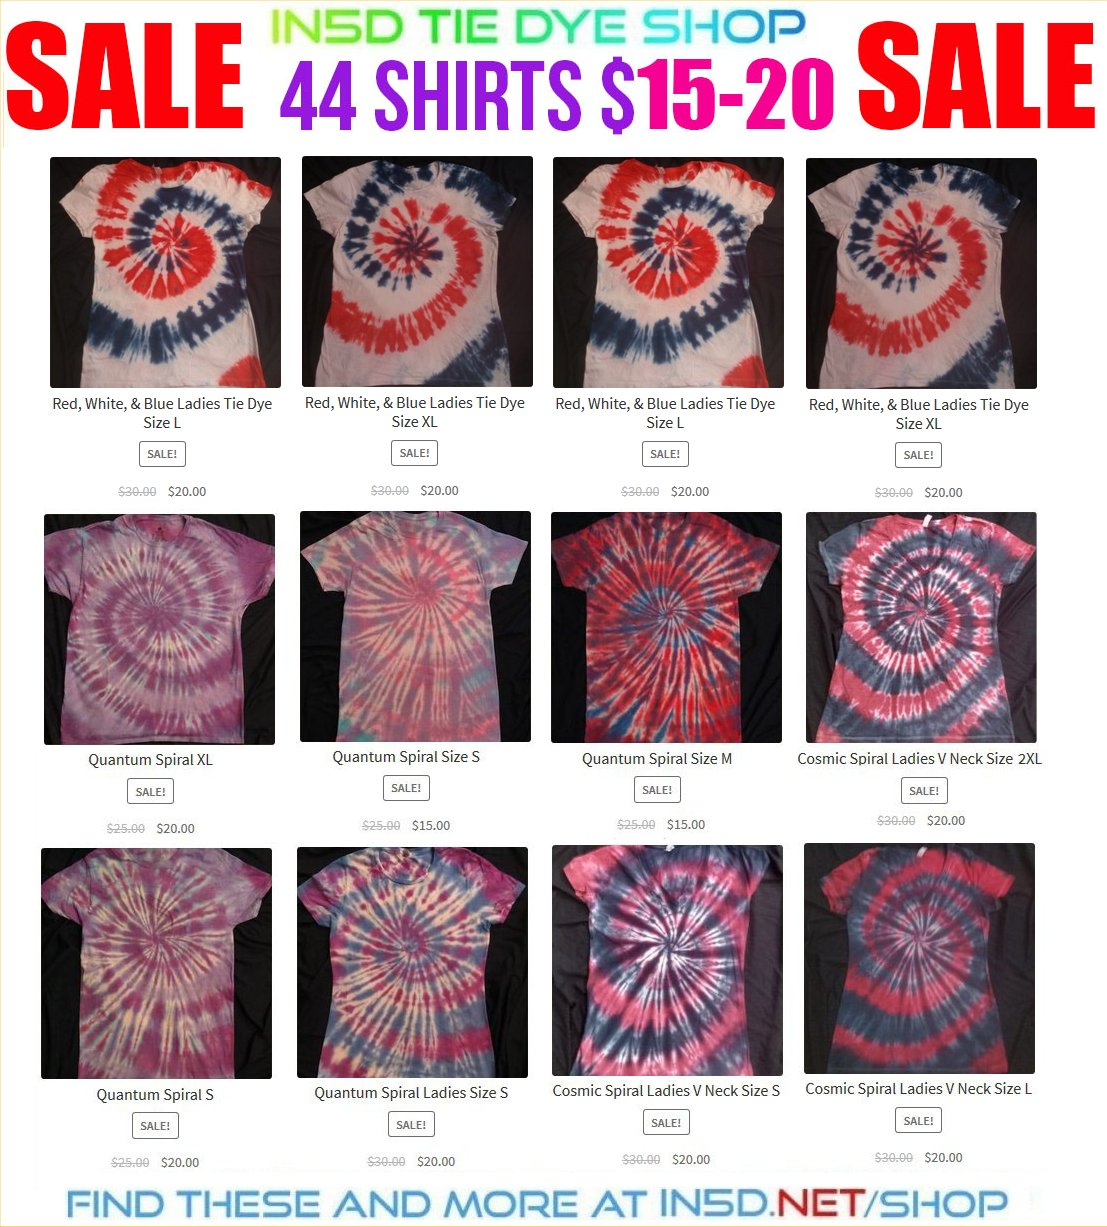 HOLIDAY SALE! 44 In5D QUANTUM TIE DYE SHIRTS $15-20 EACH!!!